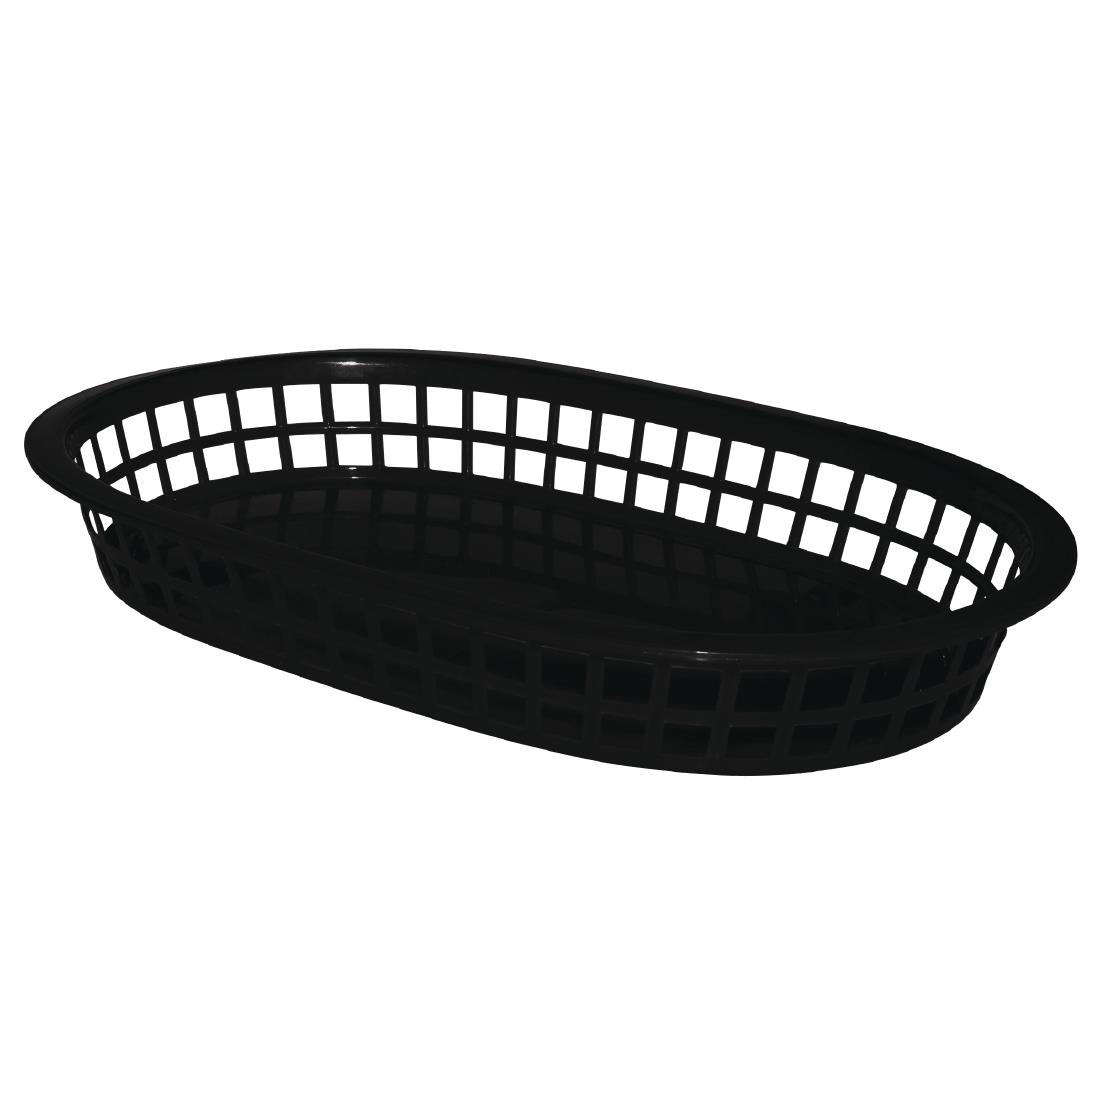 Oval Polypropylene Food Basket Black